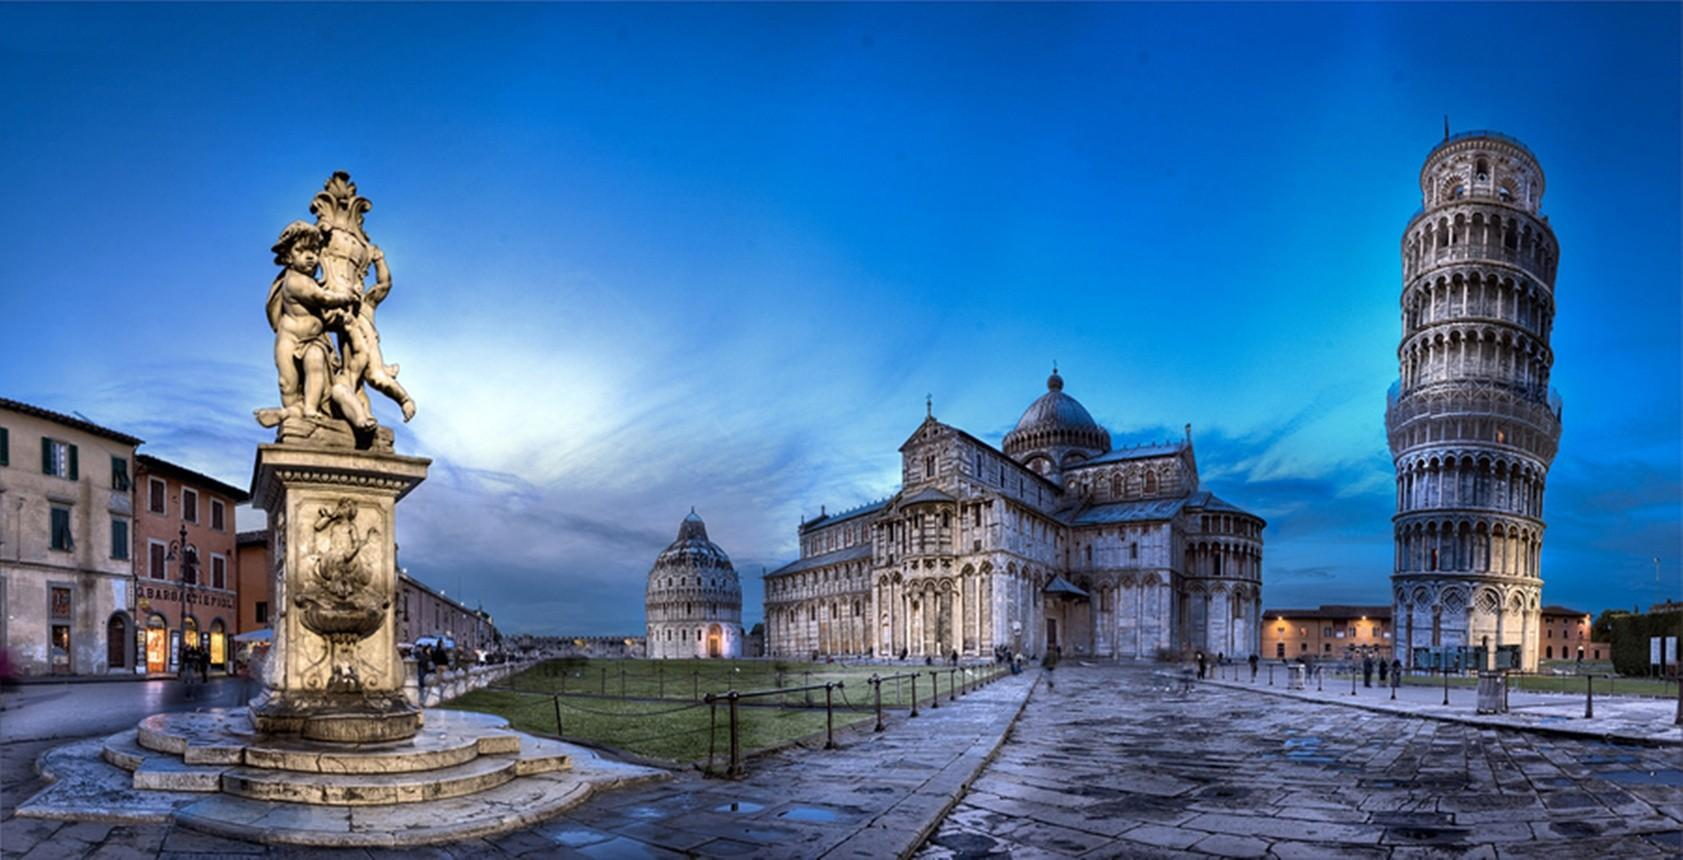 Toscana Tag wallpapers: Pisa Cathedral Italy Toscana HD Desktop